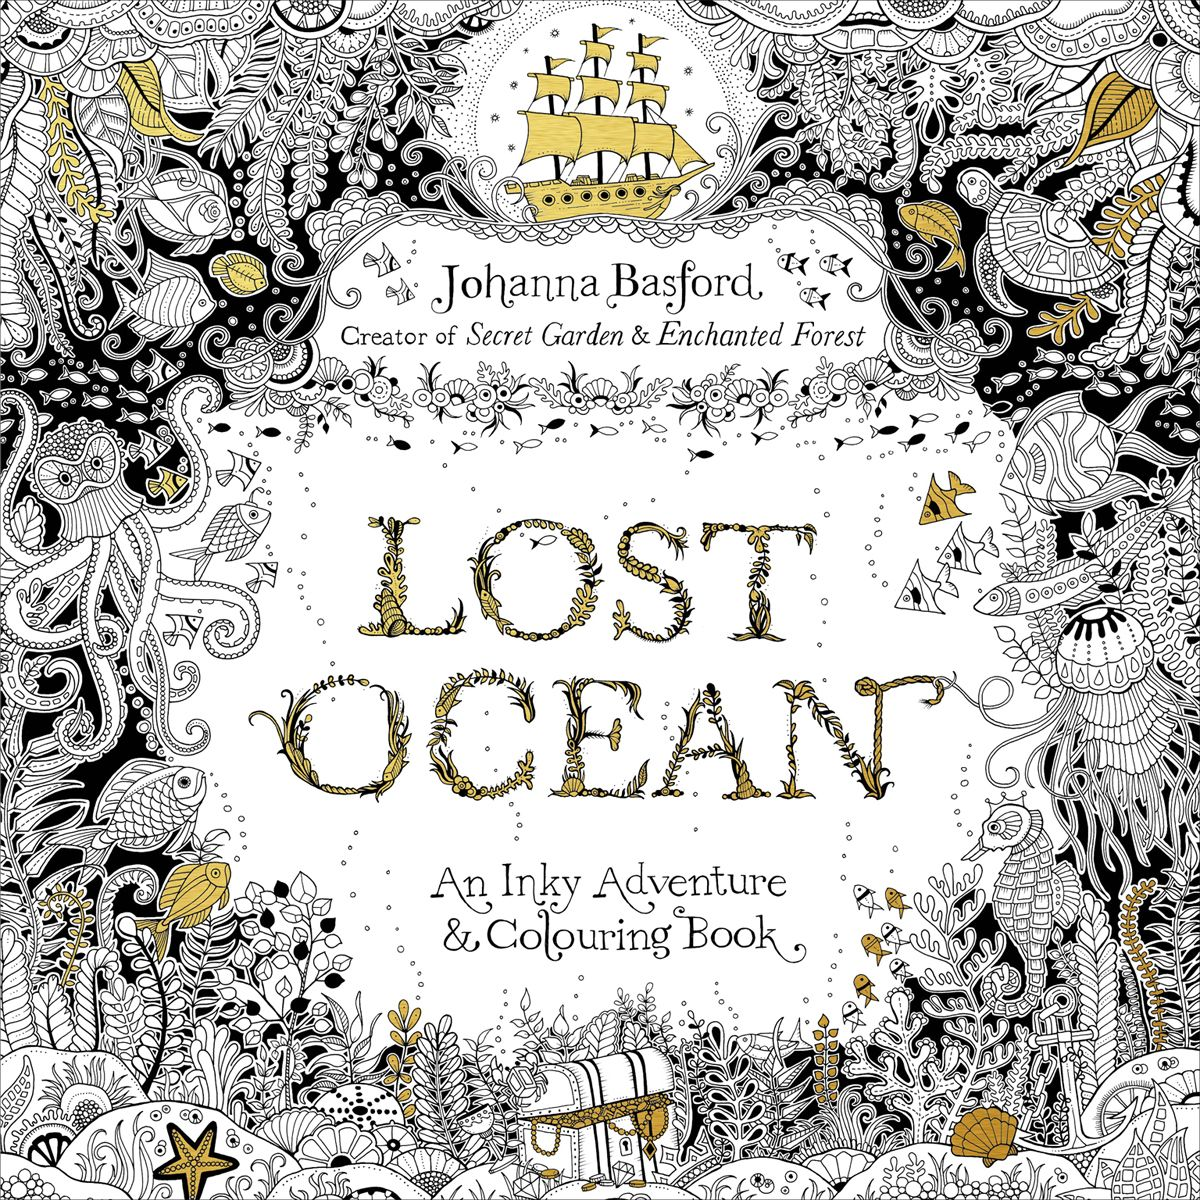 Johanna Basford Revealed The Cover Of Her New Coloring Book Today SUPER Excited To Share With You All For My Colouring Lost Ocean